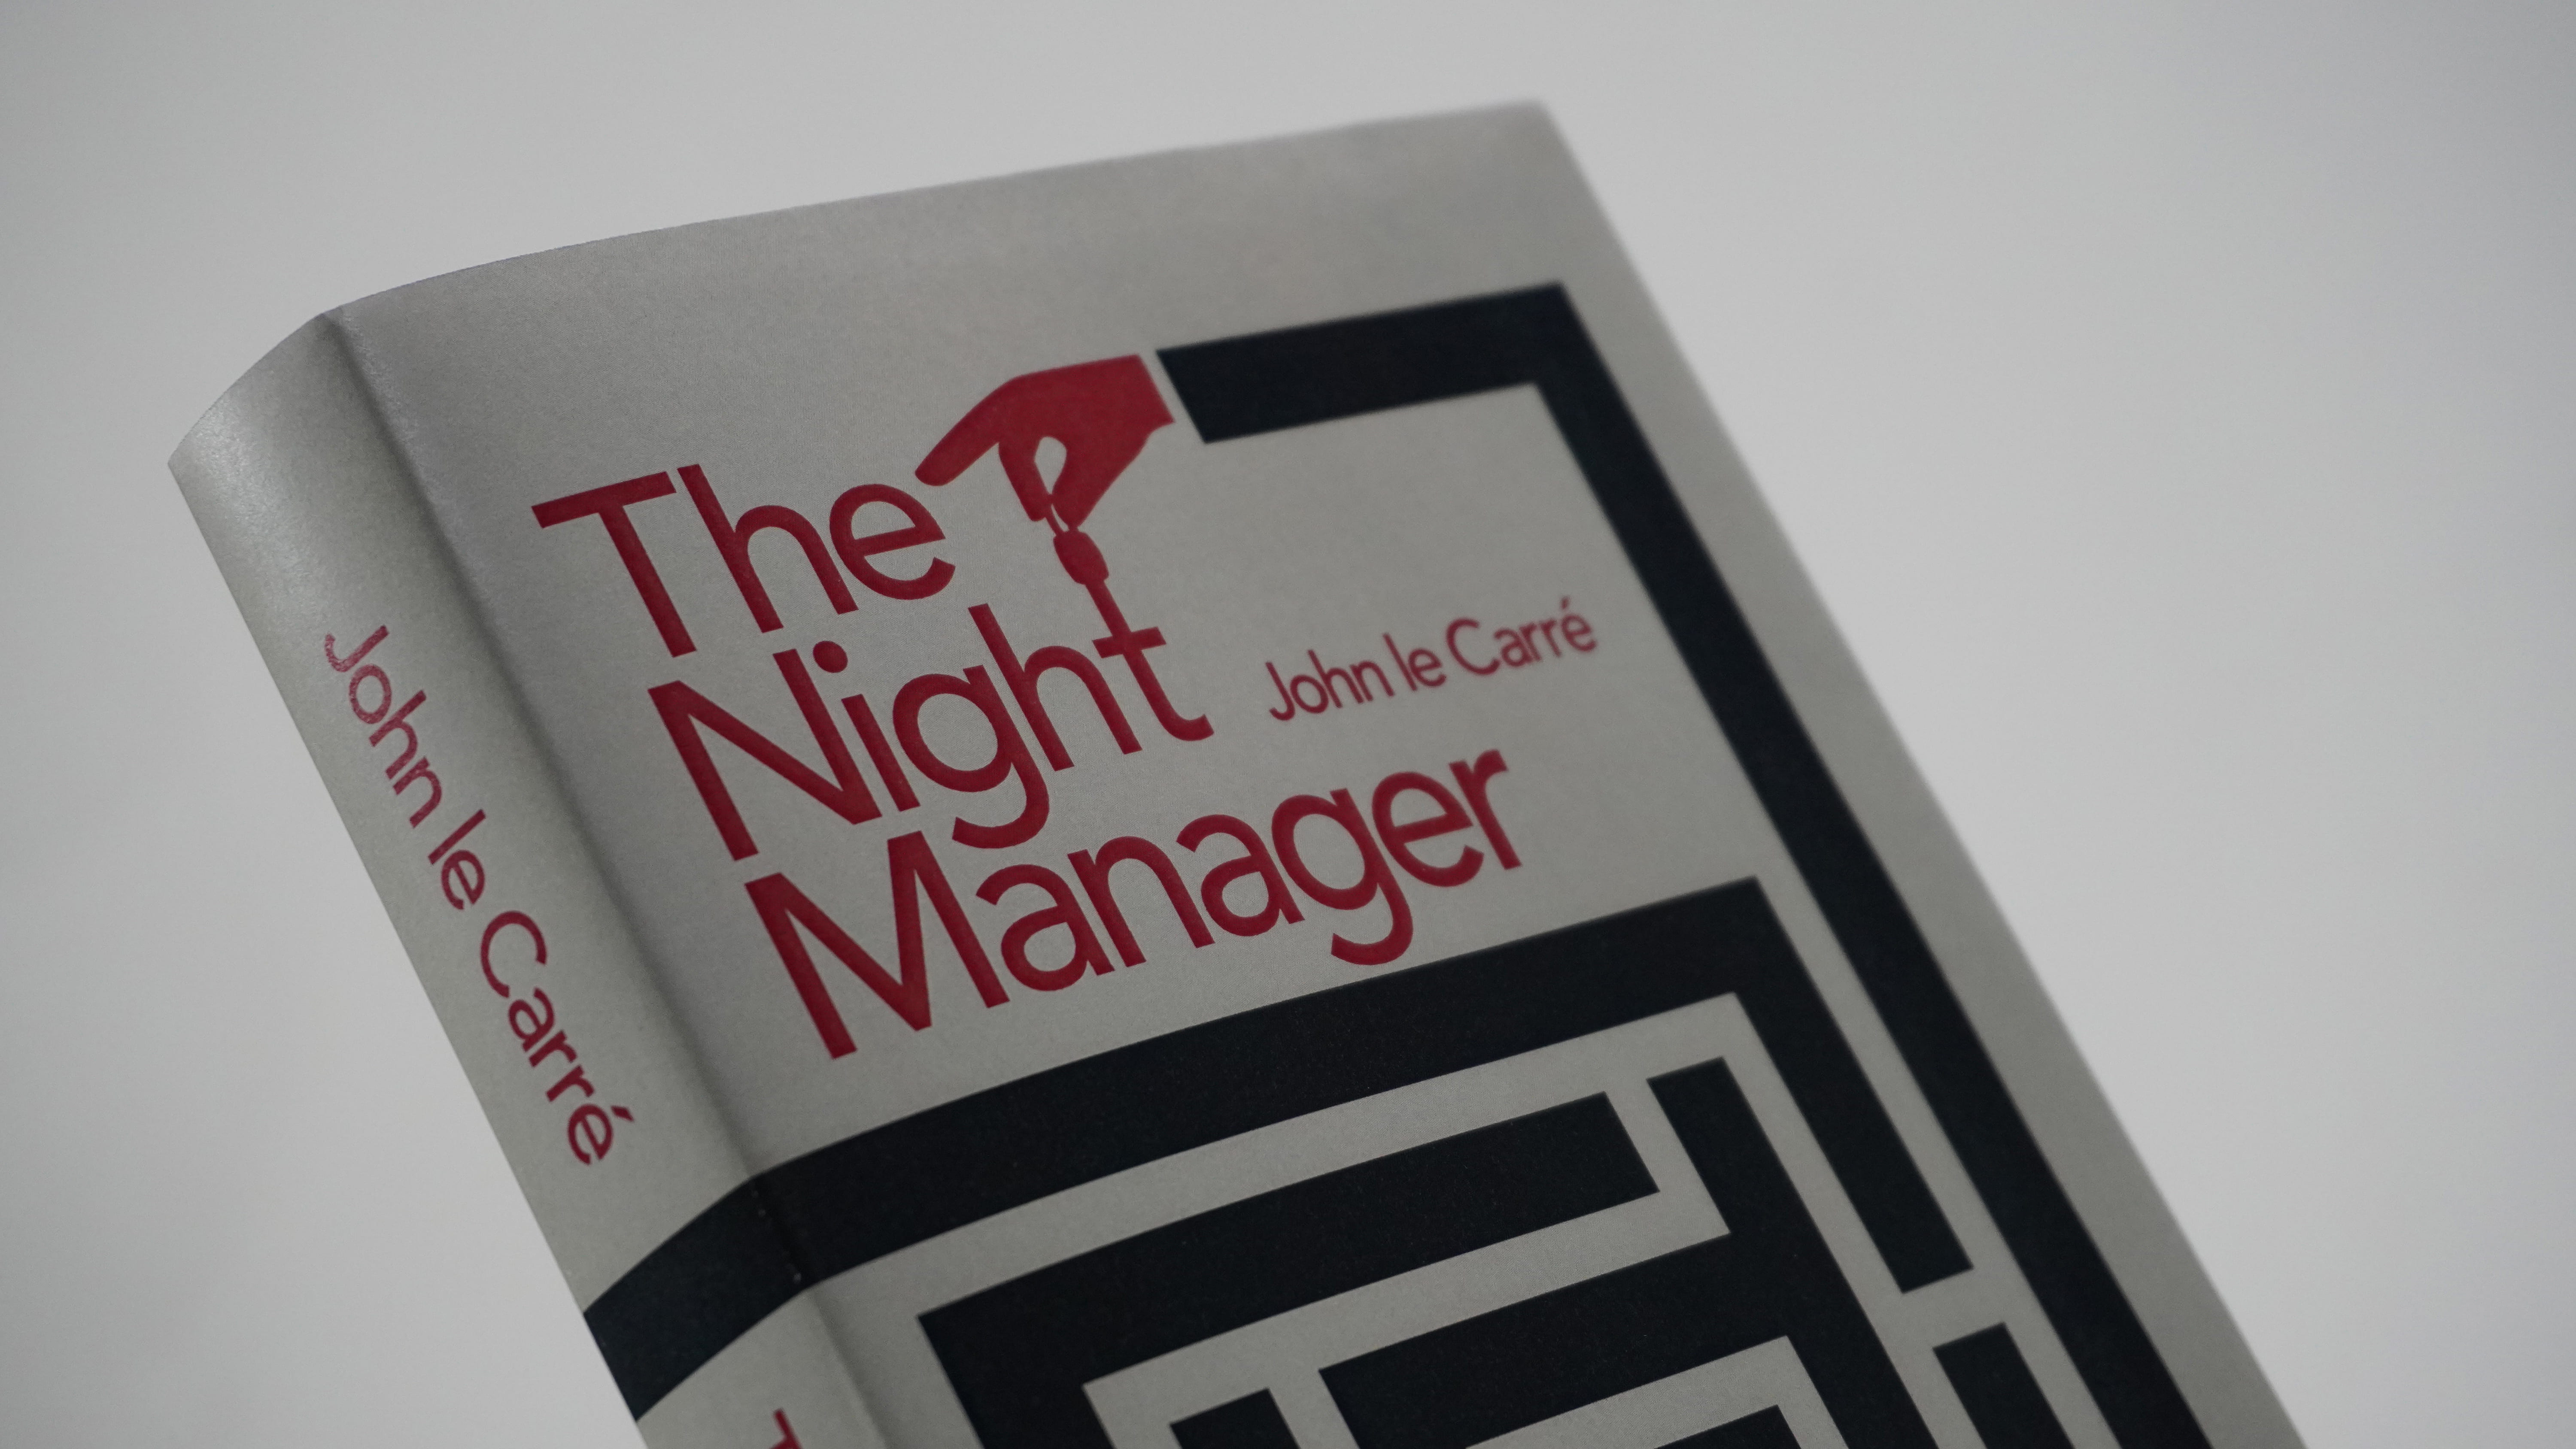 The front cover of 'The night manager'.